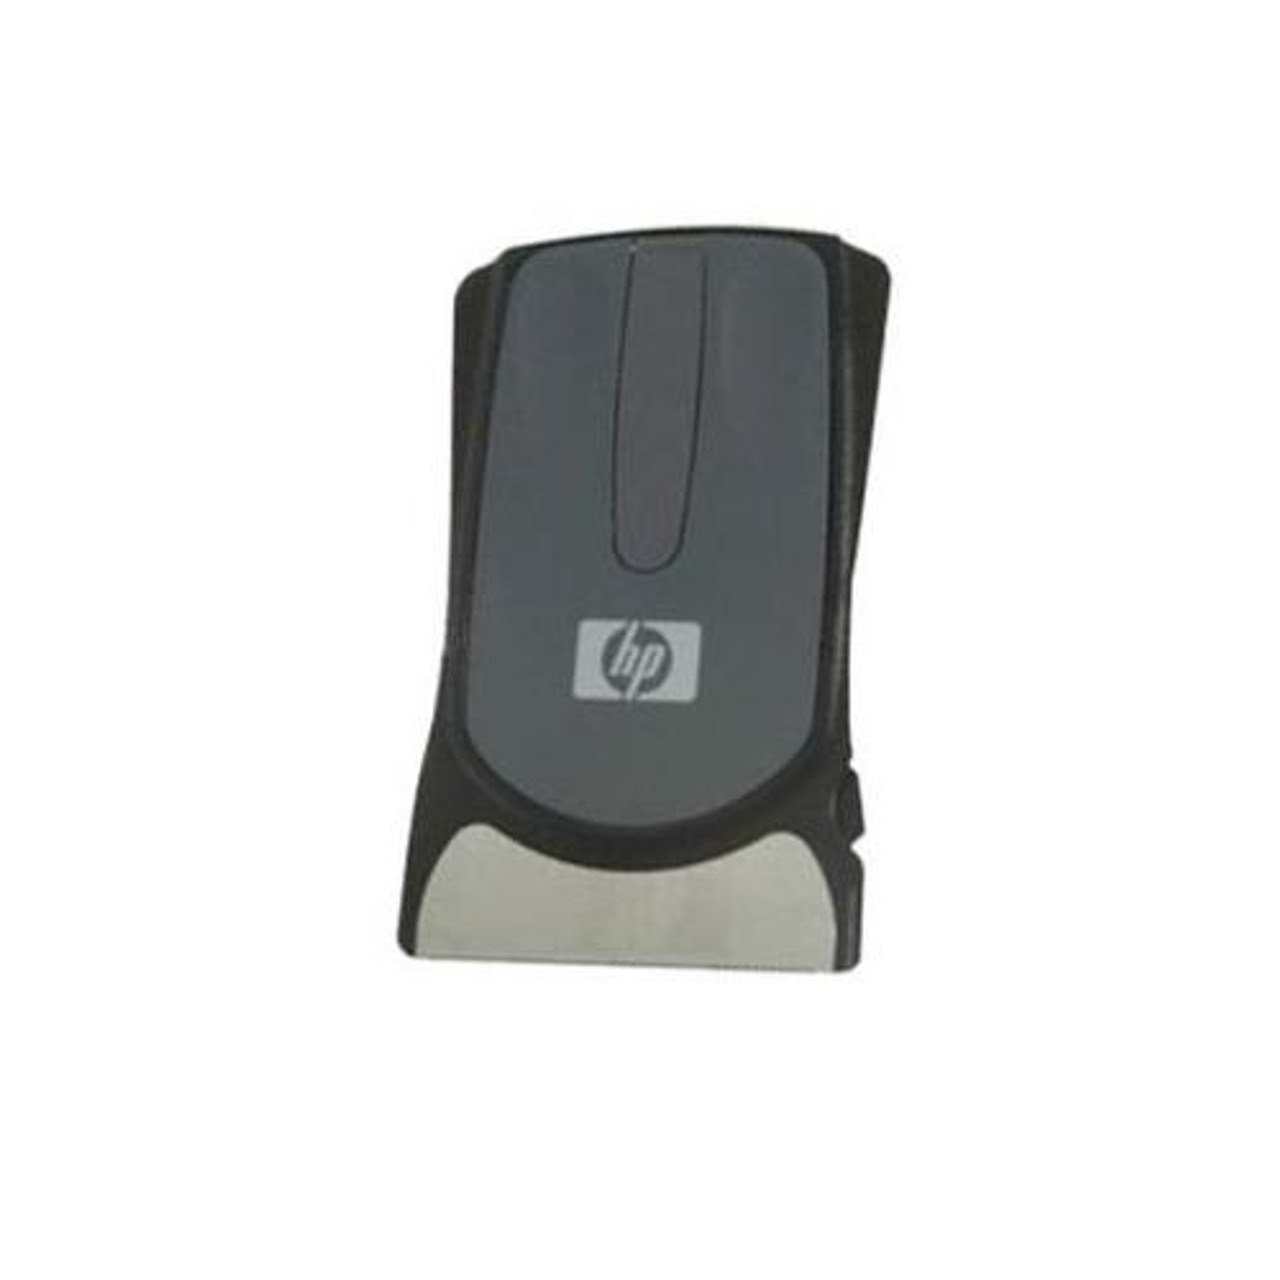 HP Bluetooth PC Card Mouse